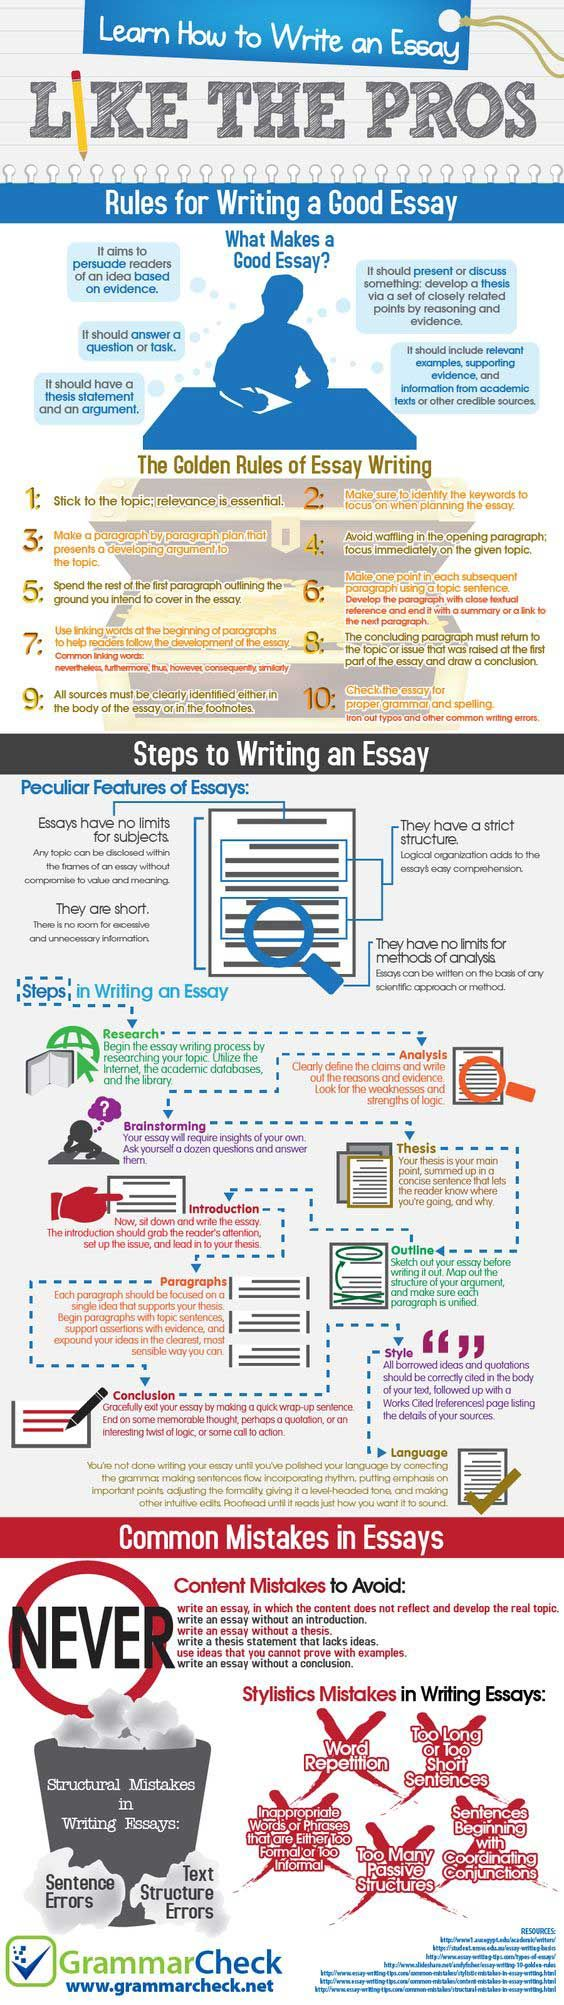 Get Help Me Write A Essay Info. From 6 Search Engines at Once.